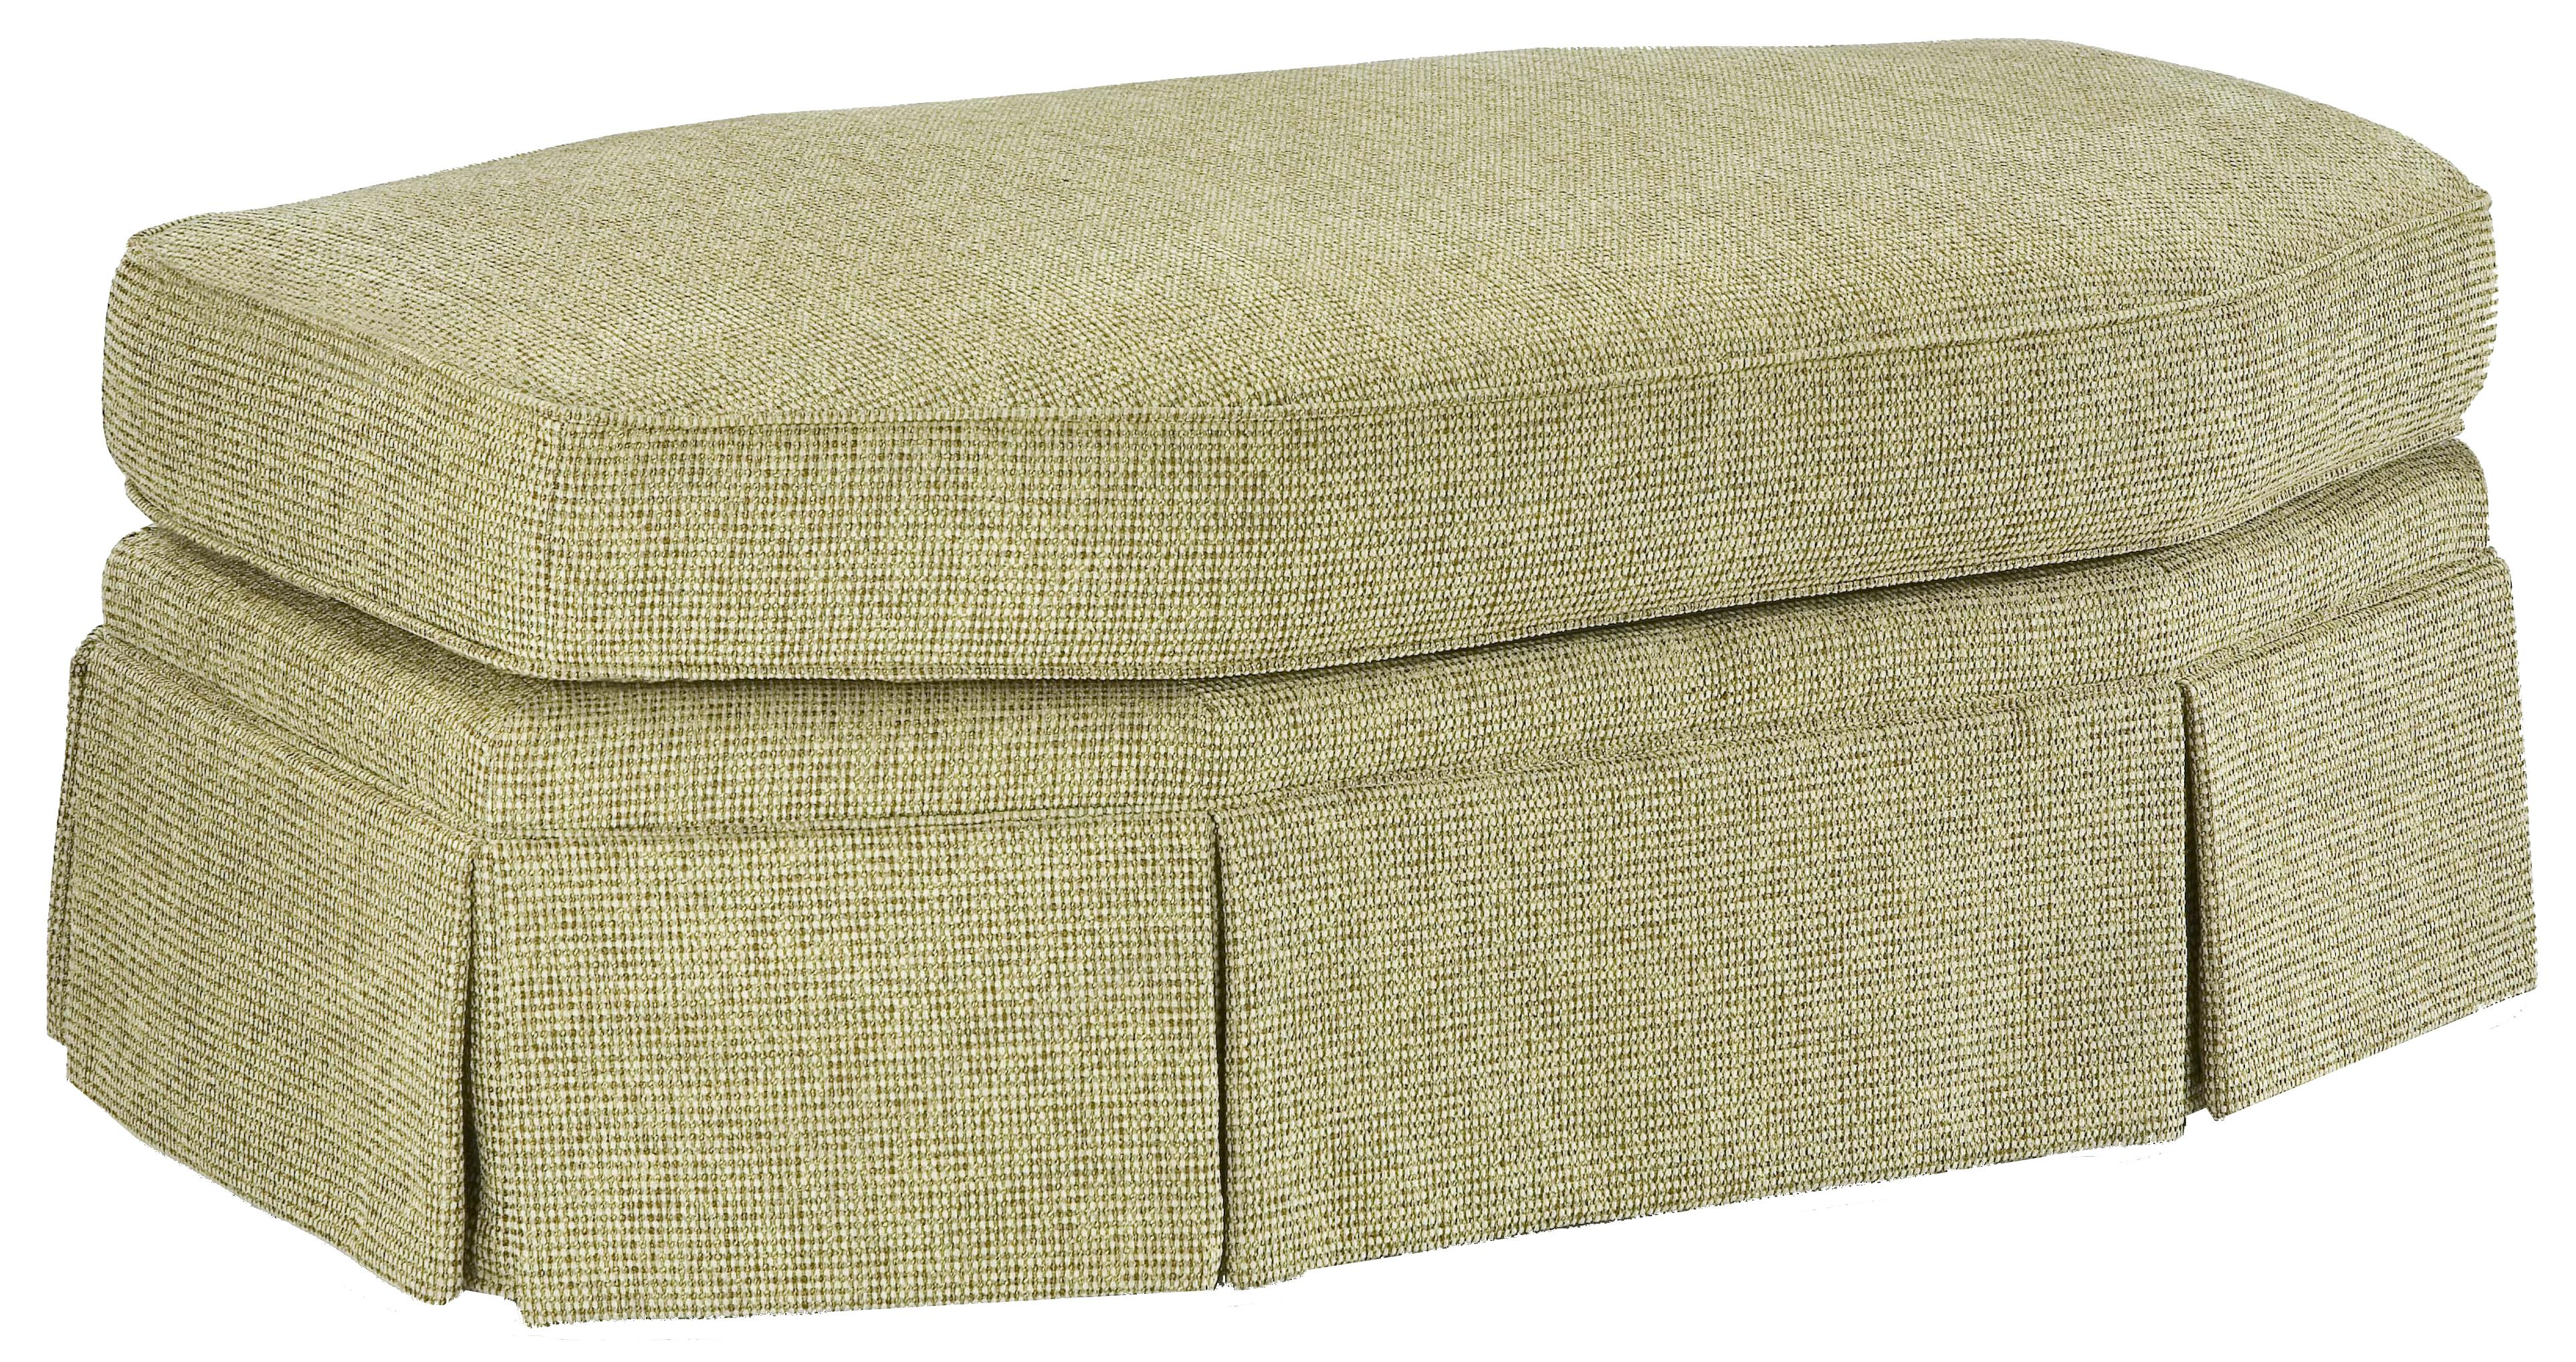 3766 Eight-Sided Oval Ottoman by Fairfield at Jacksonville Furniture Mart